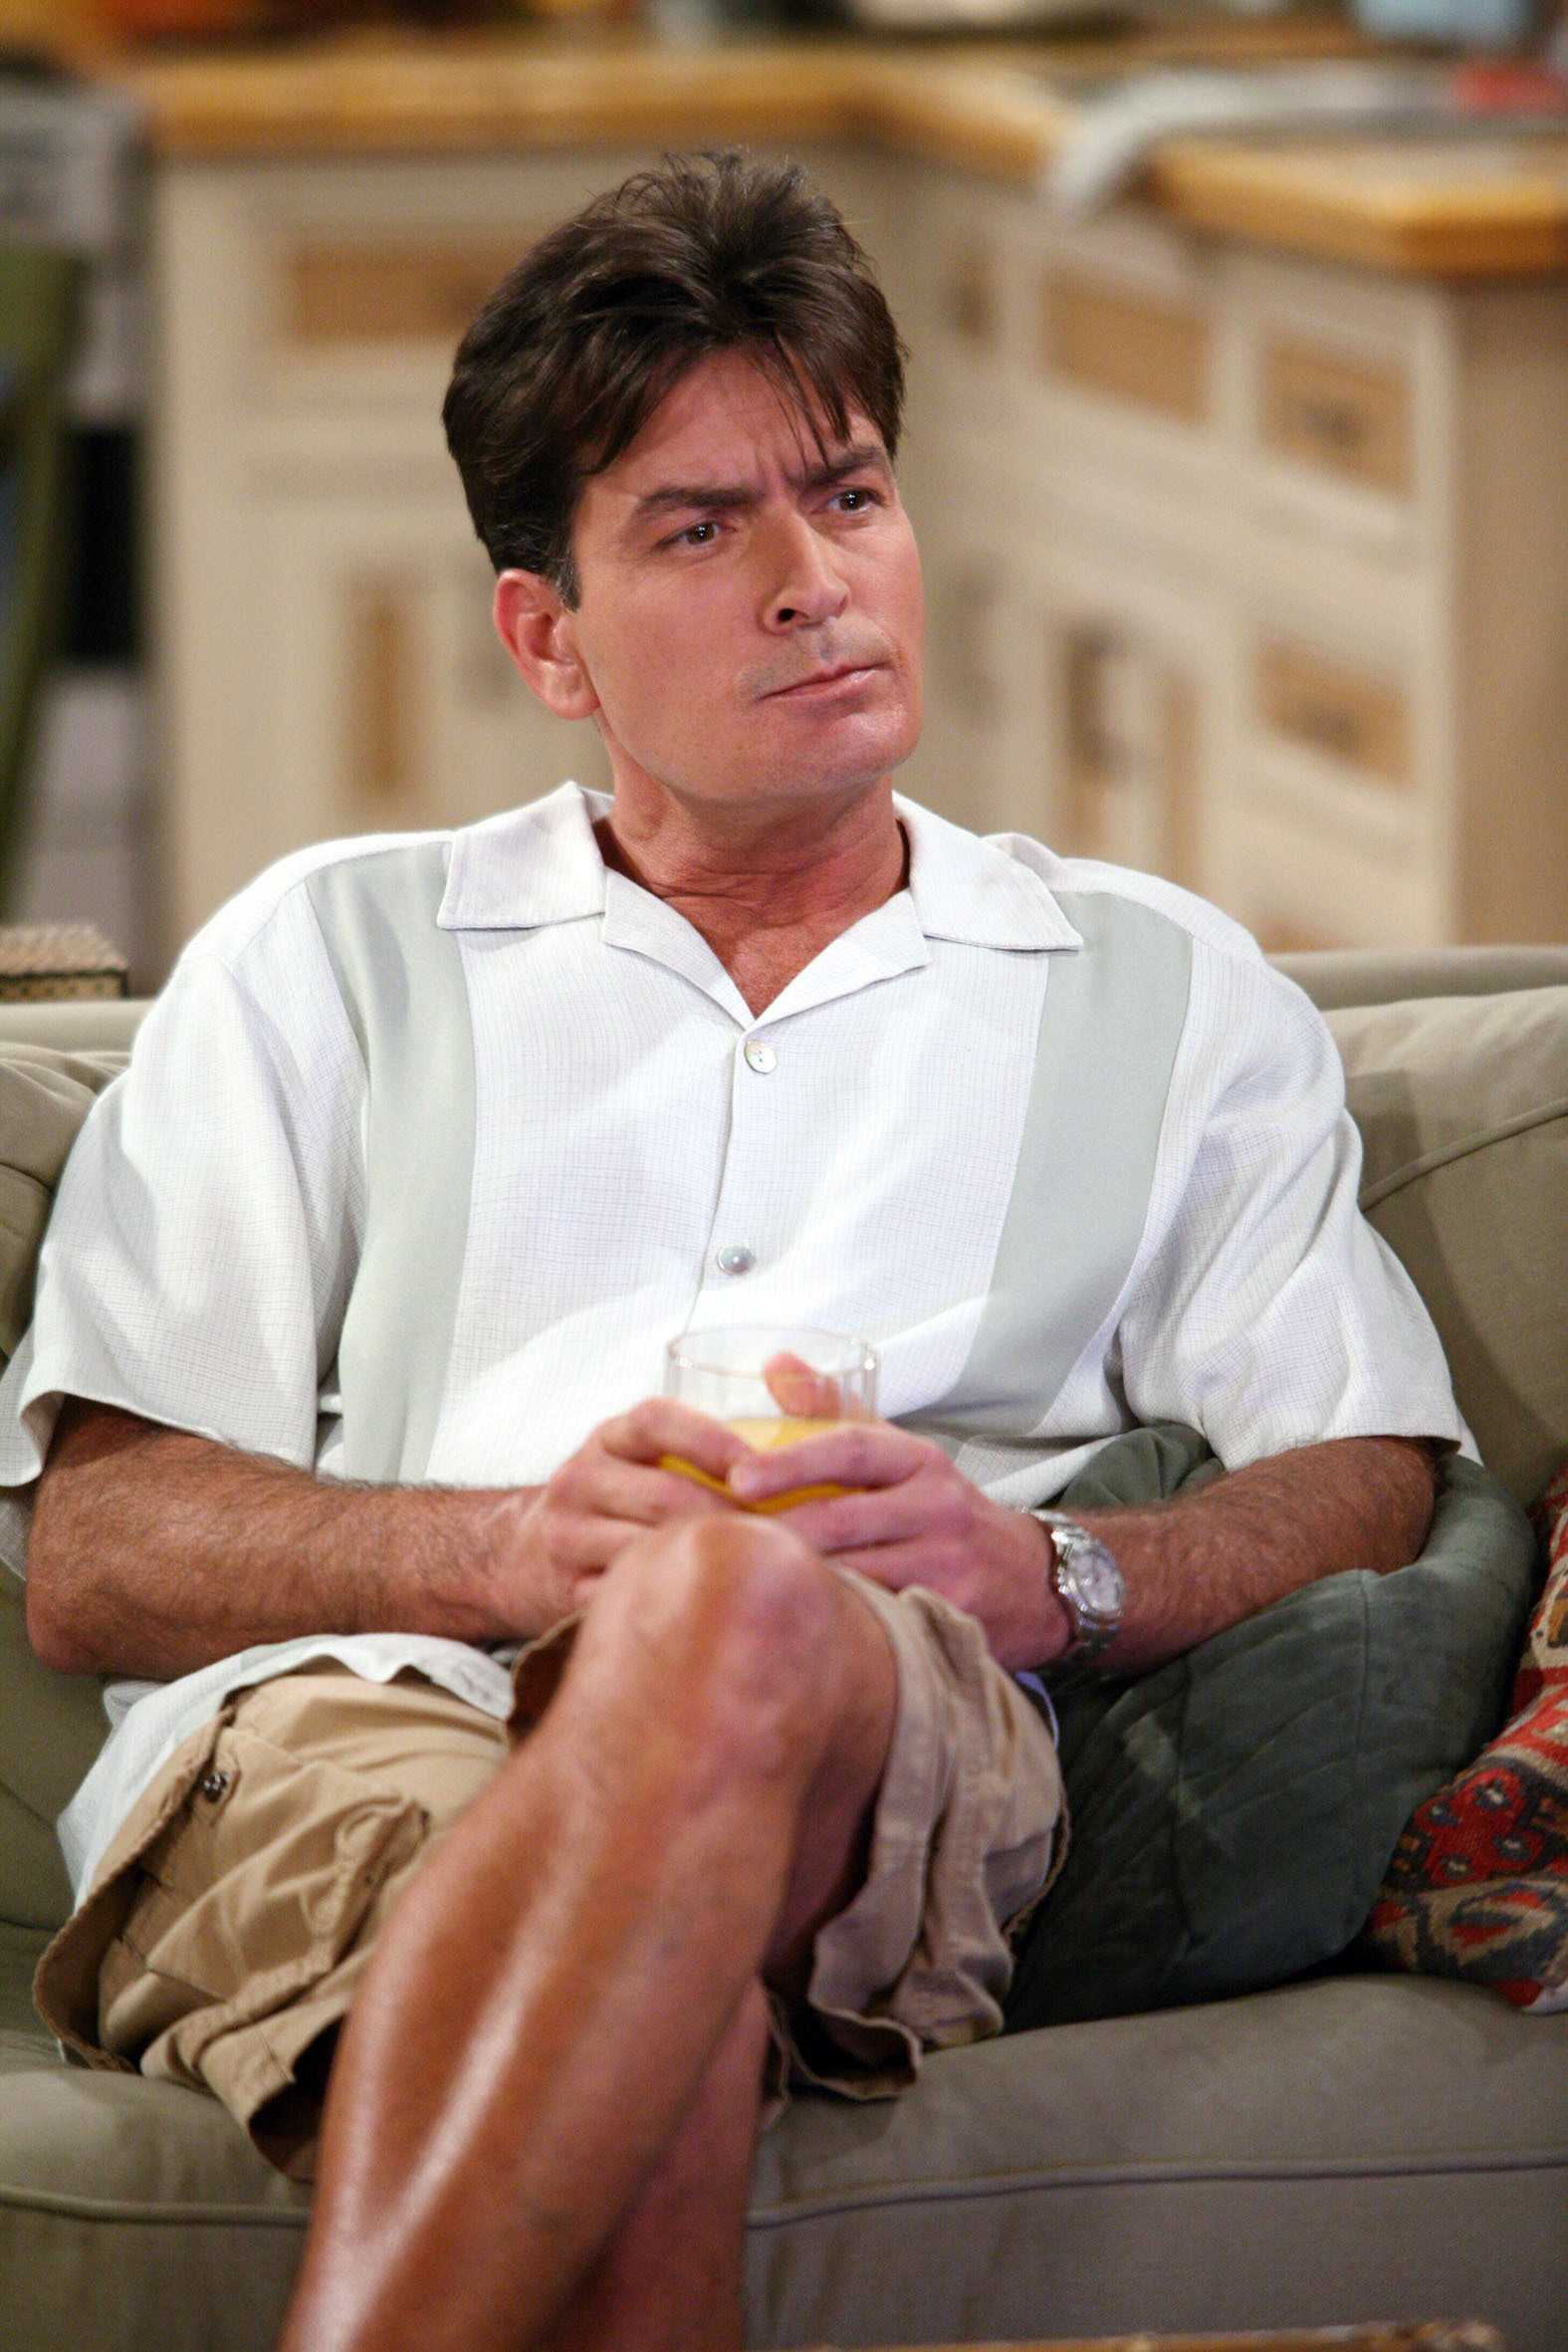 Charlie Sheen Pulled A Knife On His Dentist? | Charlie Sheen